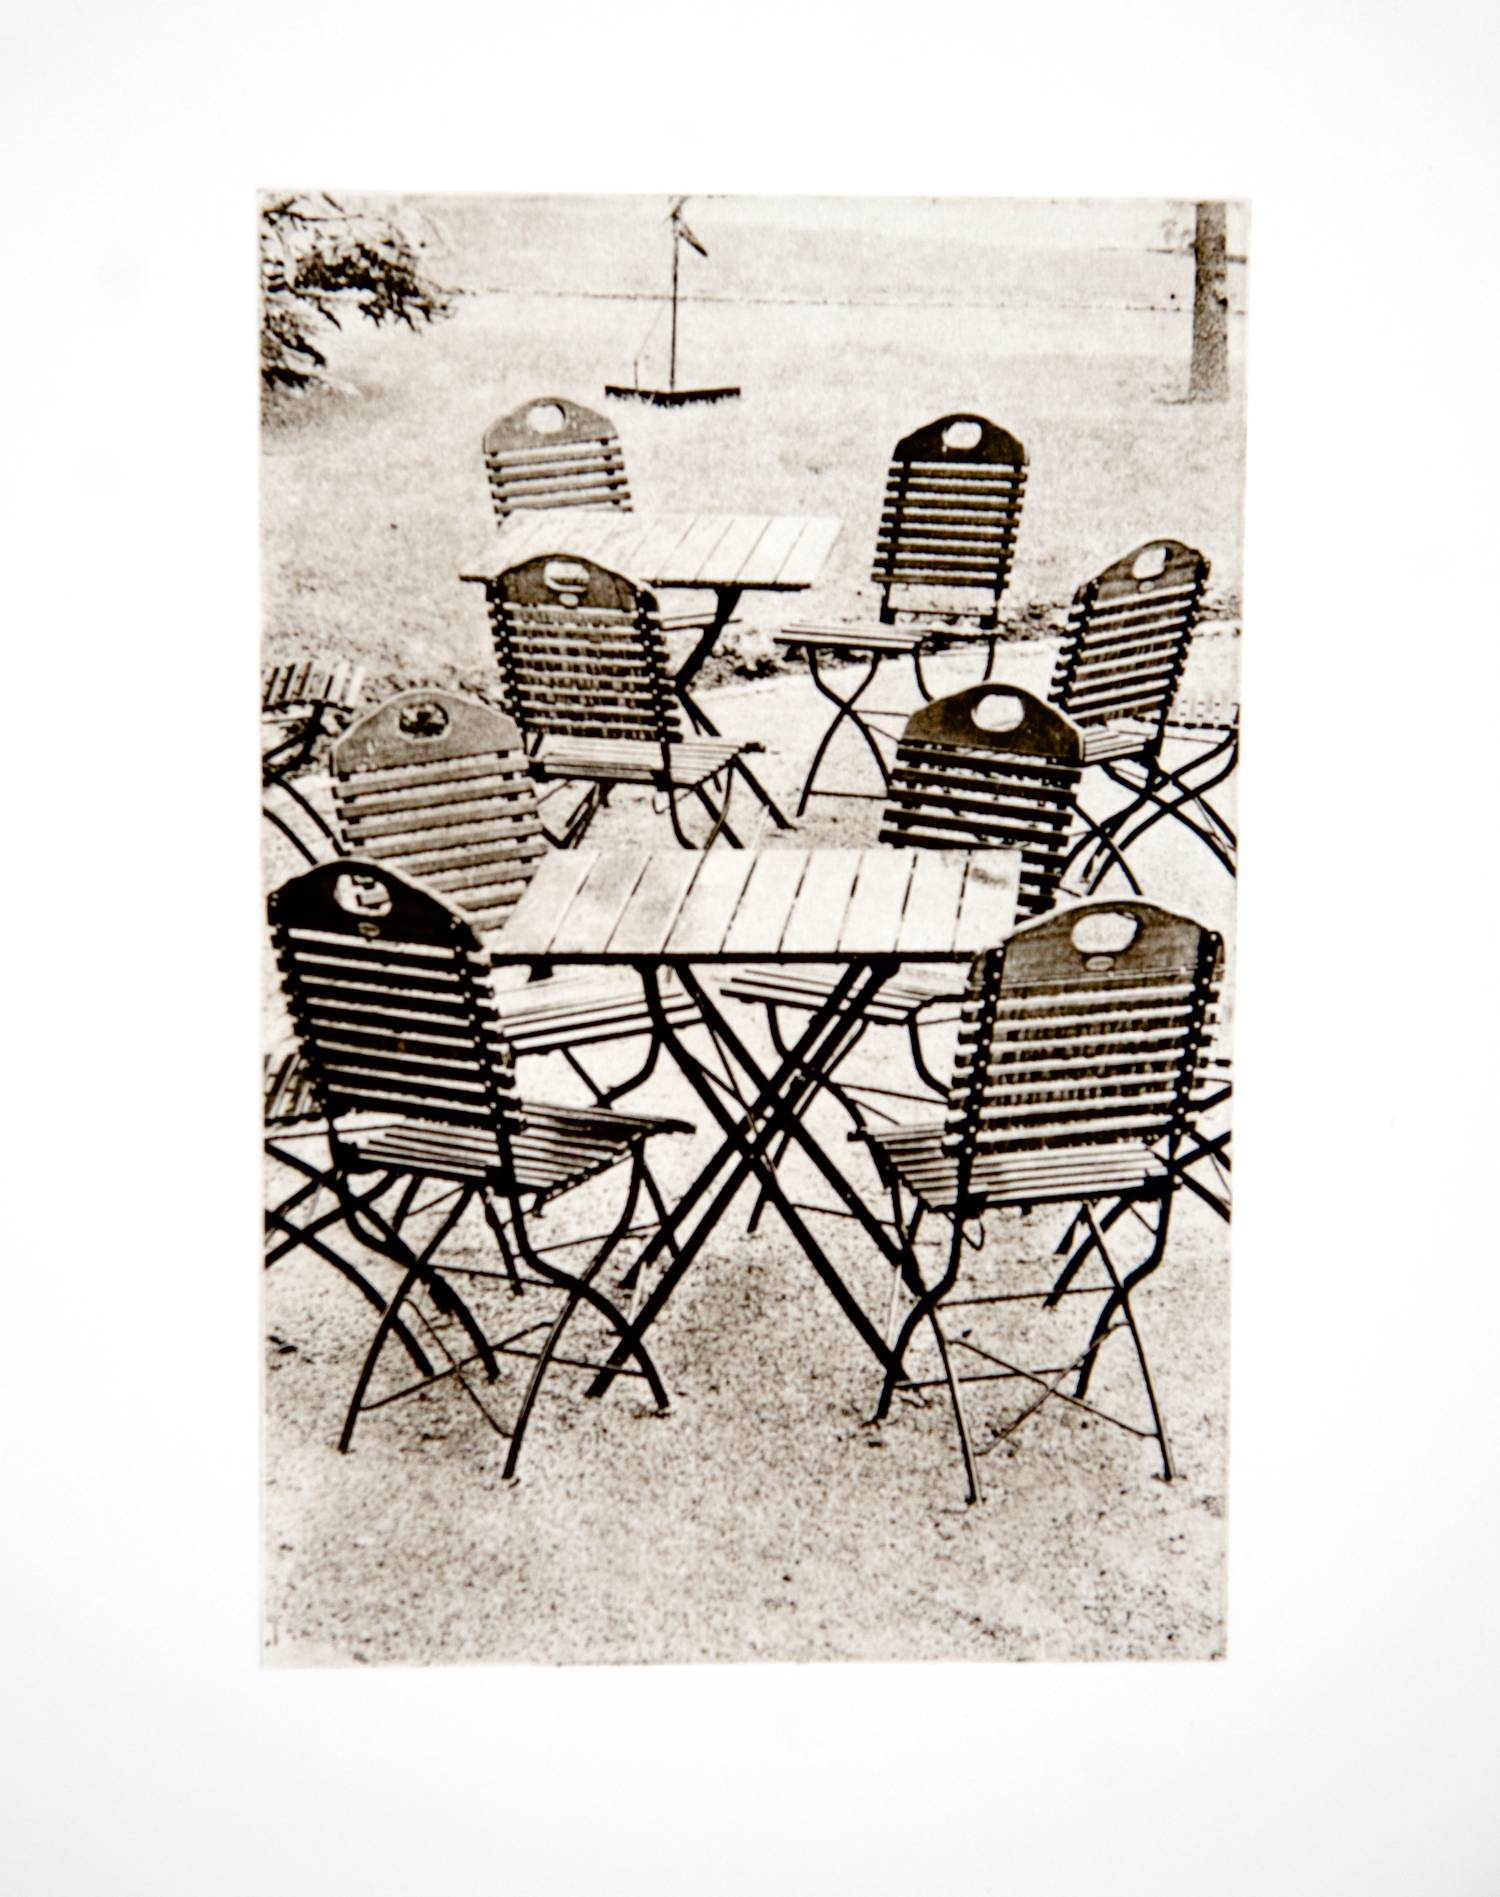 Chairs (Château de I'lle, France)